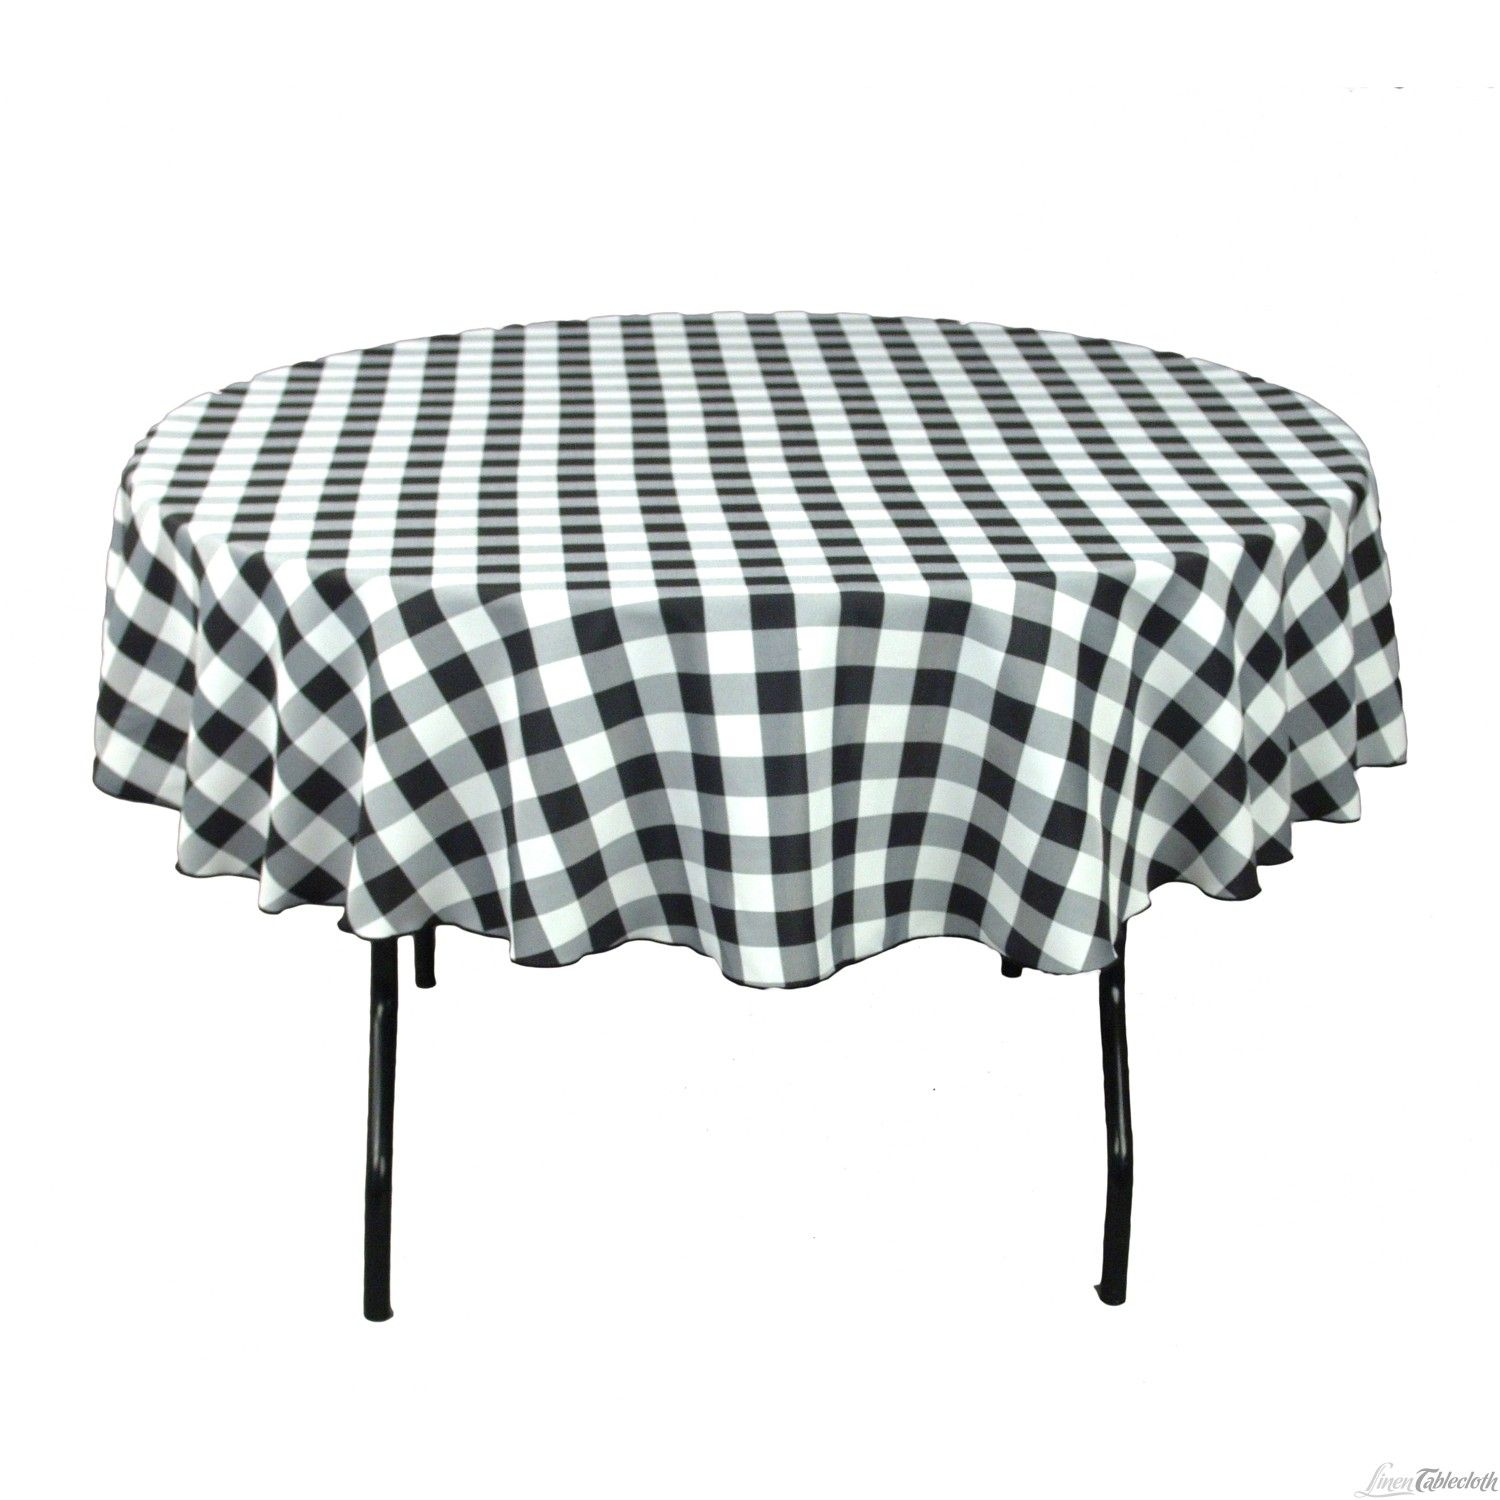 Buy 90 Inch Round, Black U0026 White Checkered Tablecloth For Weddings!  Seamless And Machine Washable Table Linens, These Wedding Tablecloths Are  Perfect For ...